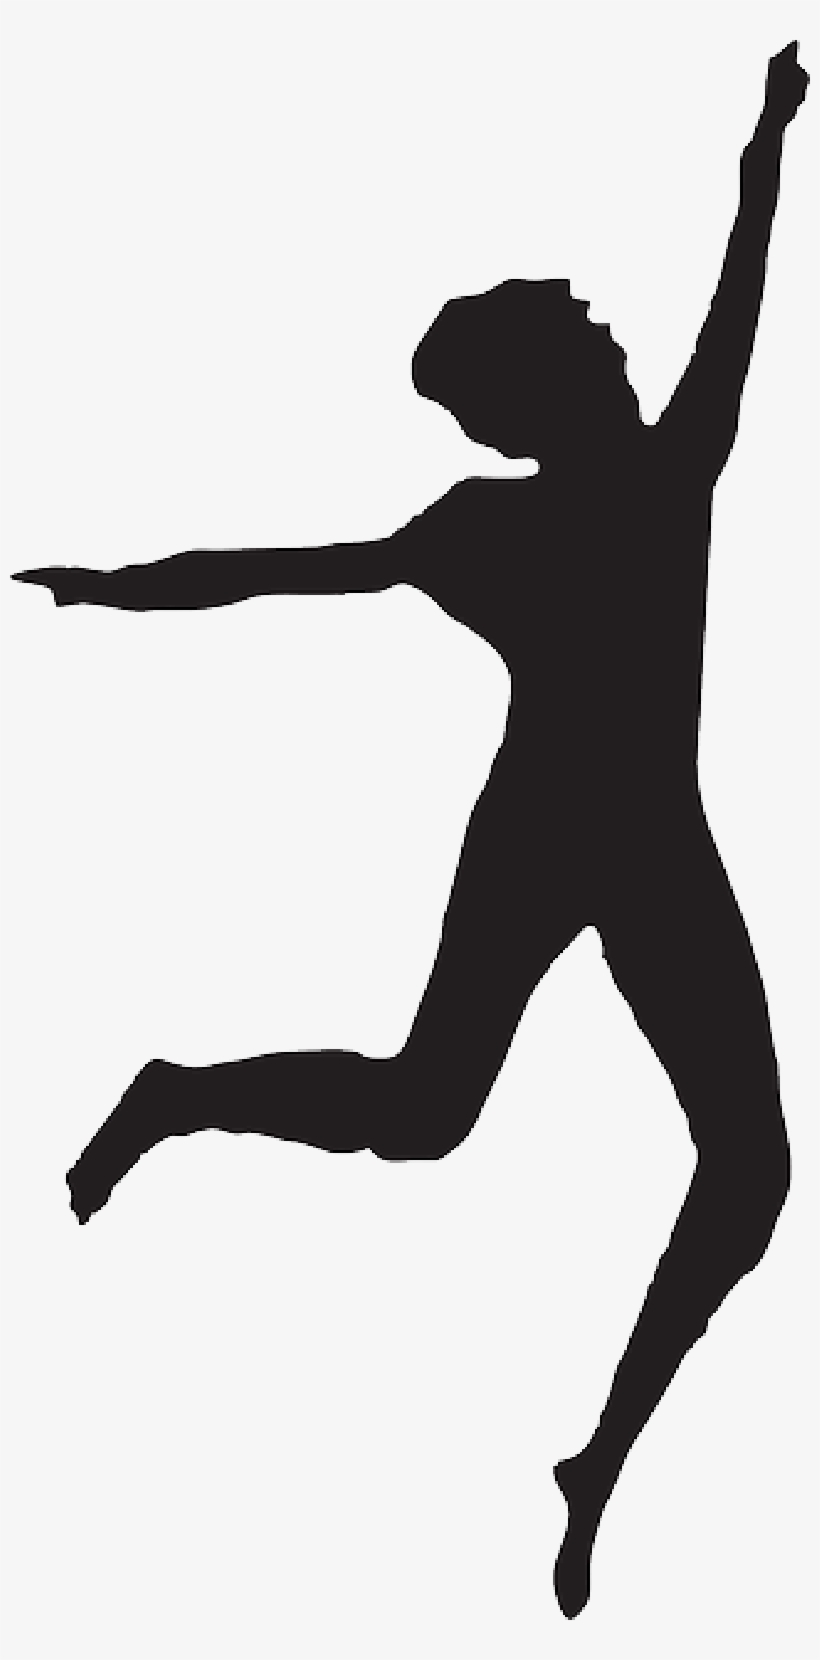 Mb Image/png - Dance Pose Silhouette Png, transparent png #1976481